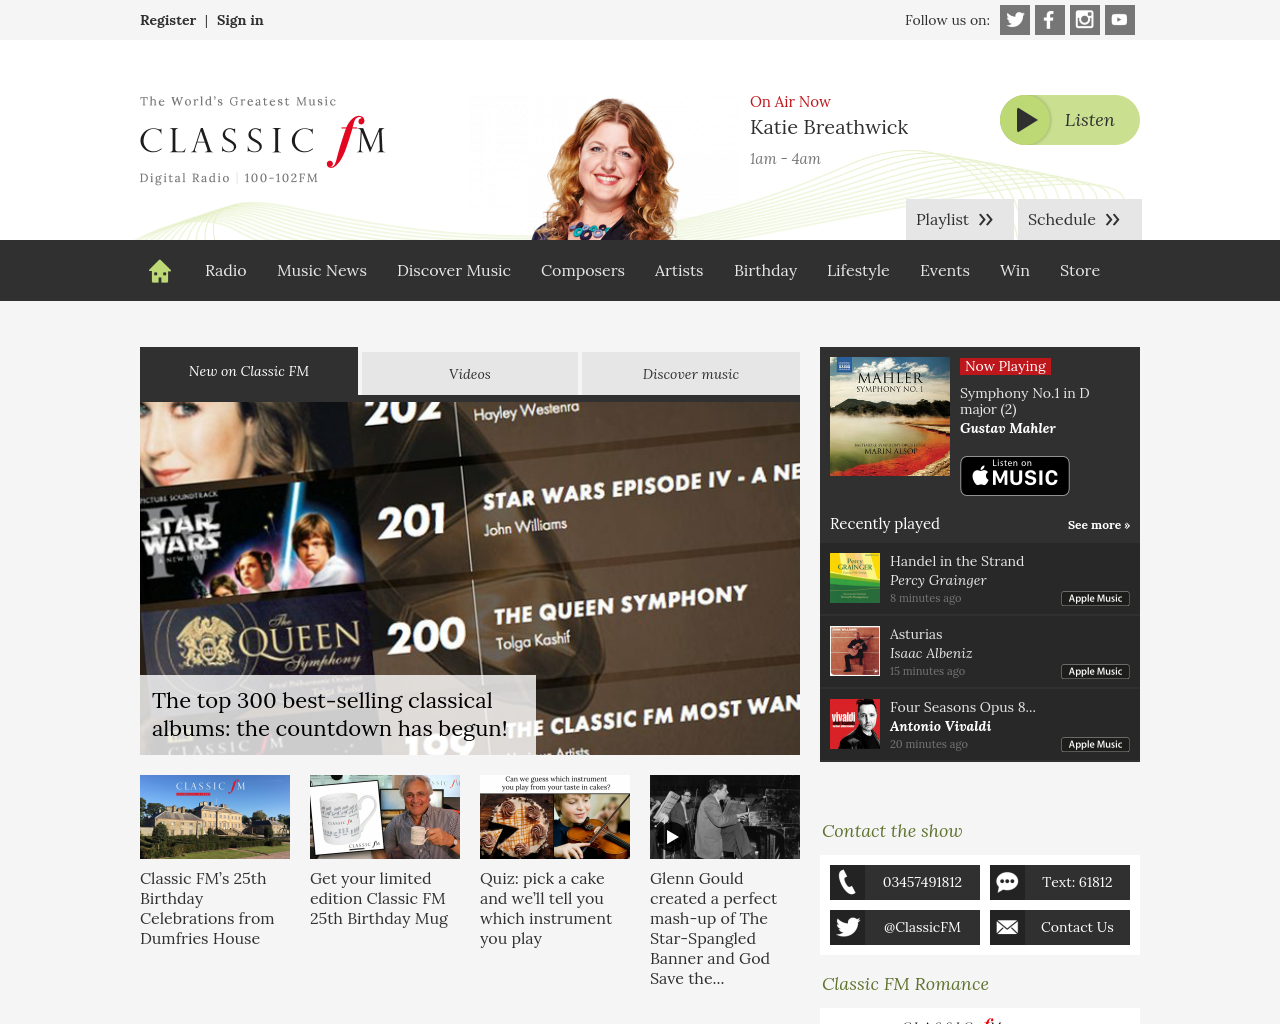 Classicfm.com-Advertising-Reviews-Pricing